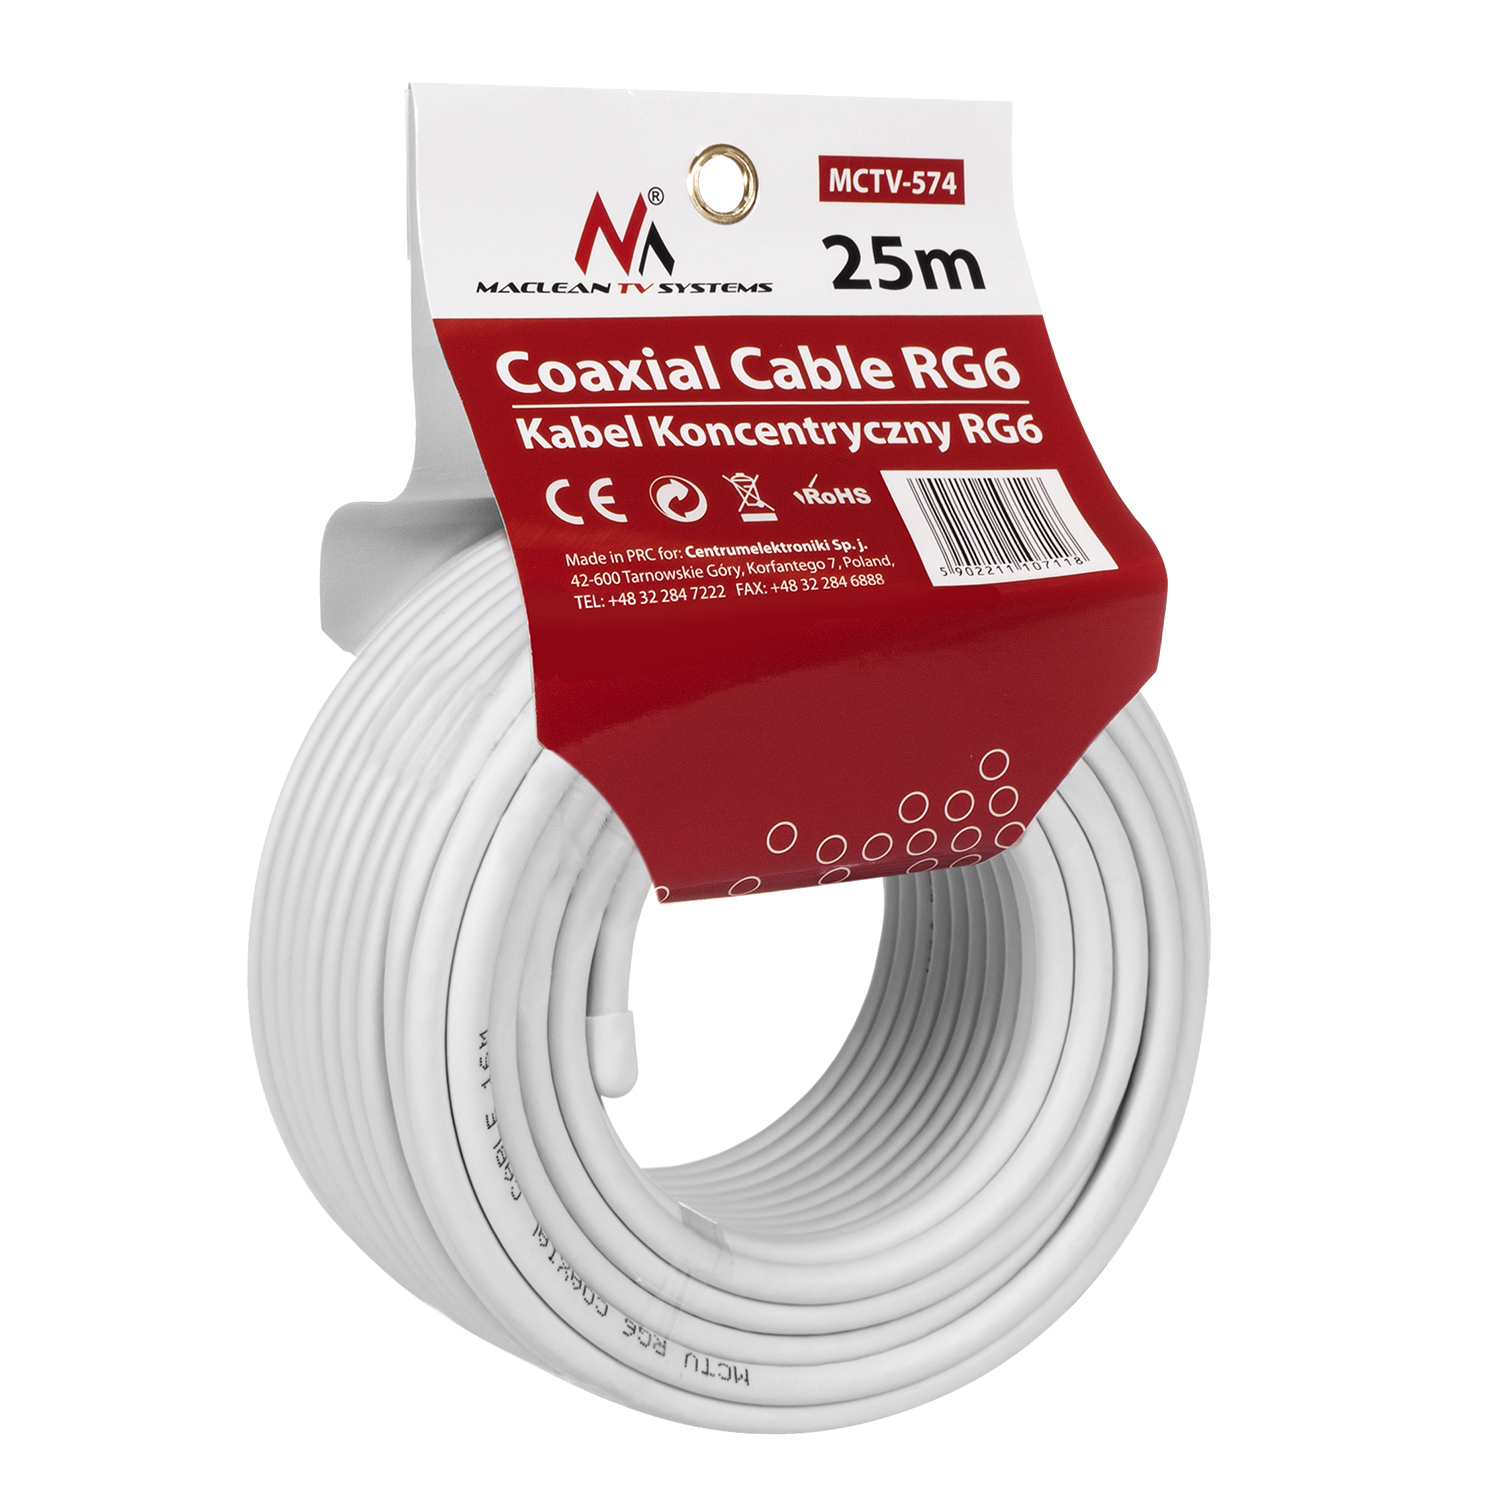 Maclean TV Systems MCTV-574 Coaxial cable 1.0CCS RG6 Satellite 75 ...